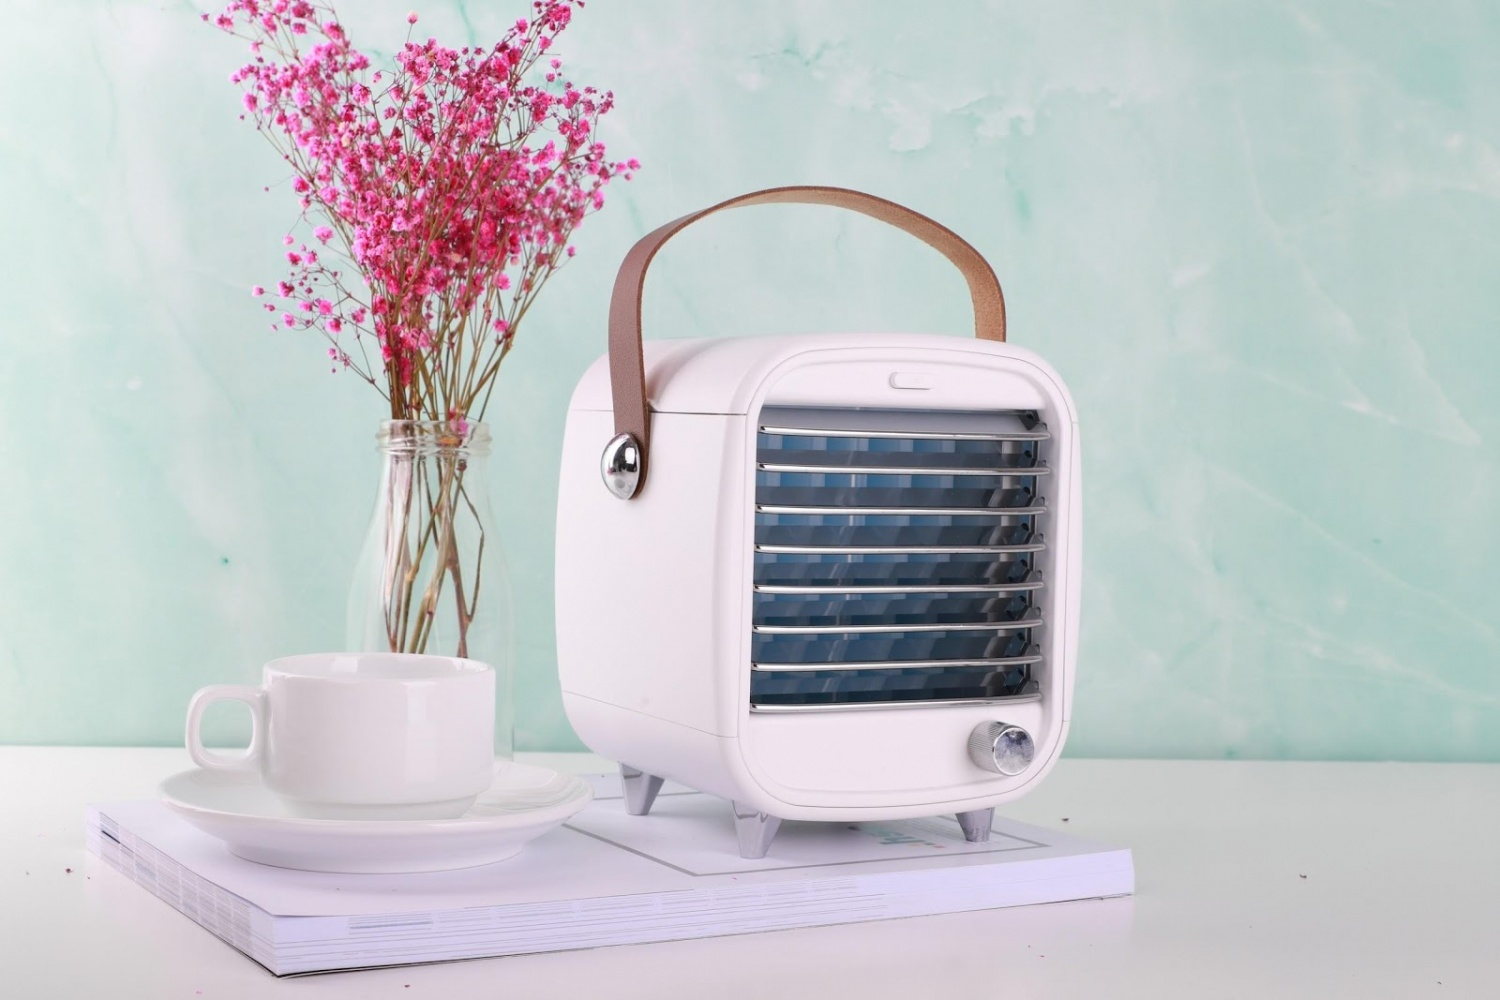 Auxiliary Portable Air Conditioner